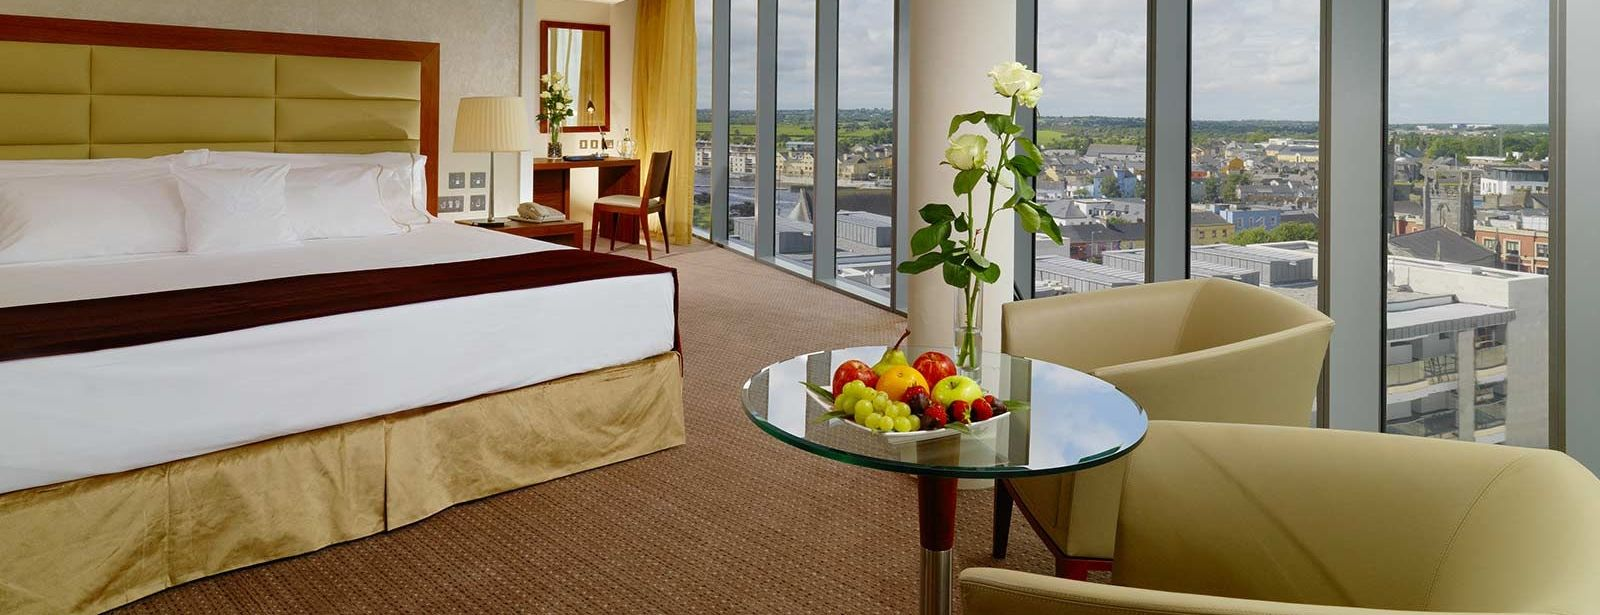 Suite at Sheraton Athlone Hotel